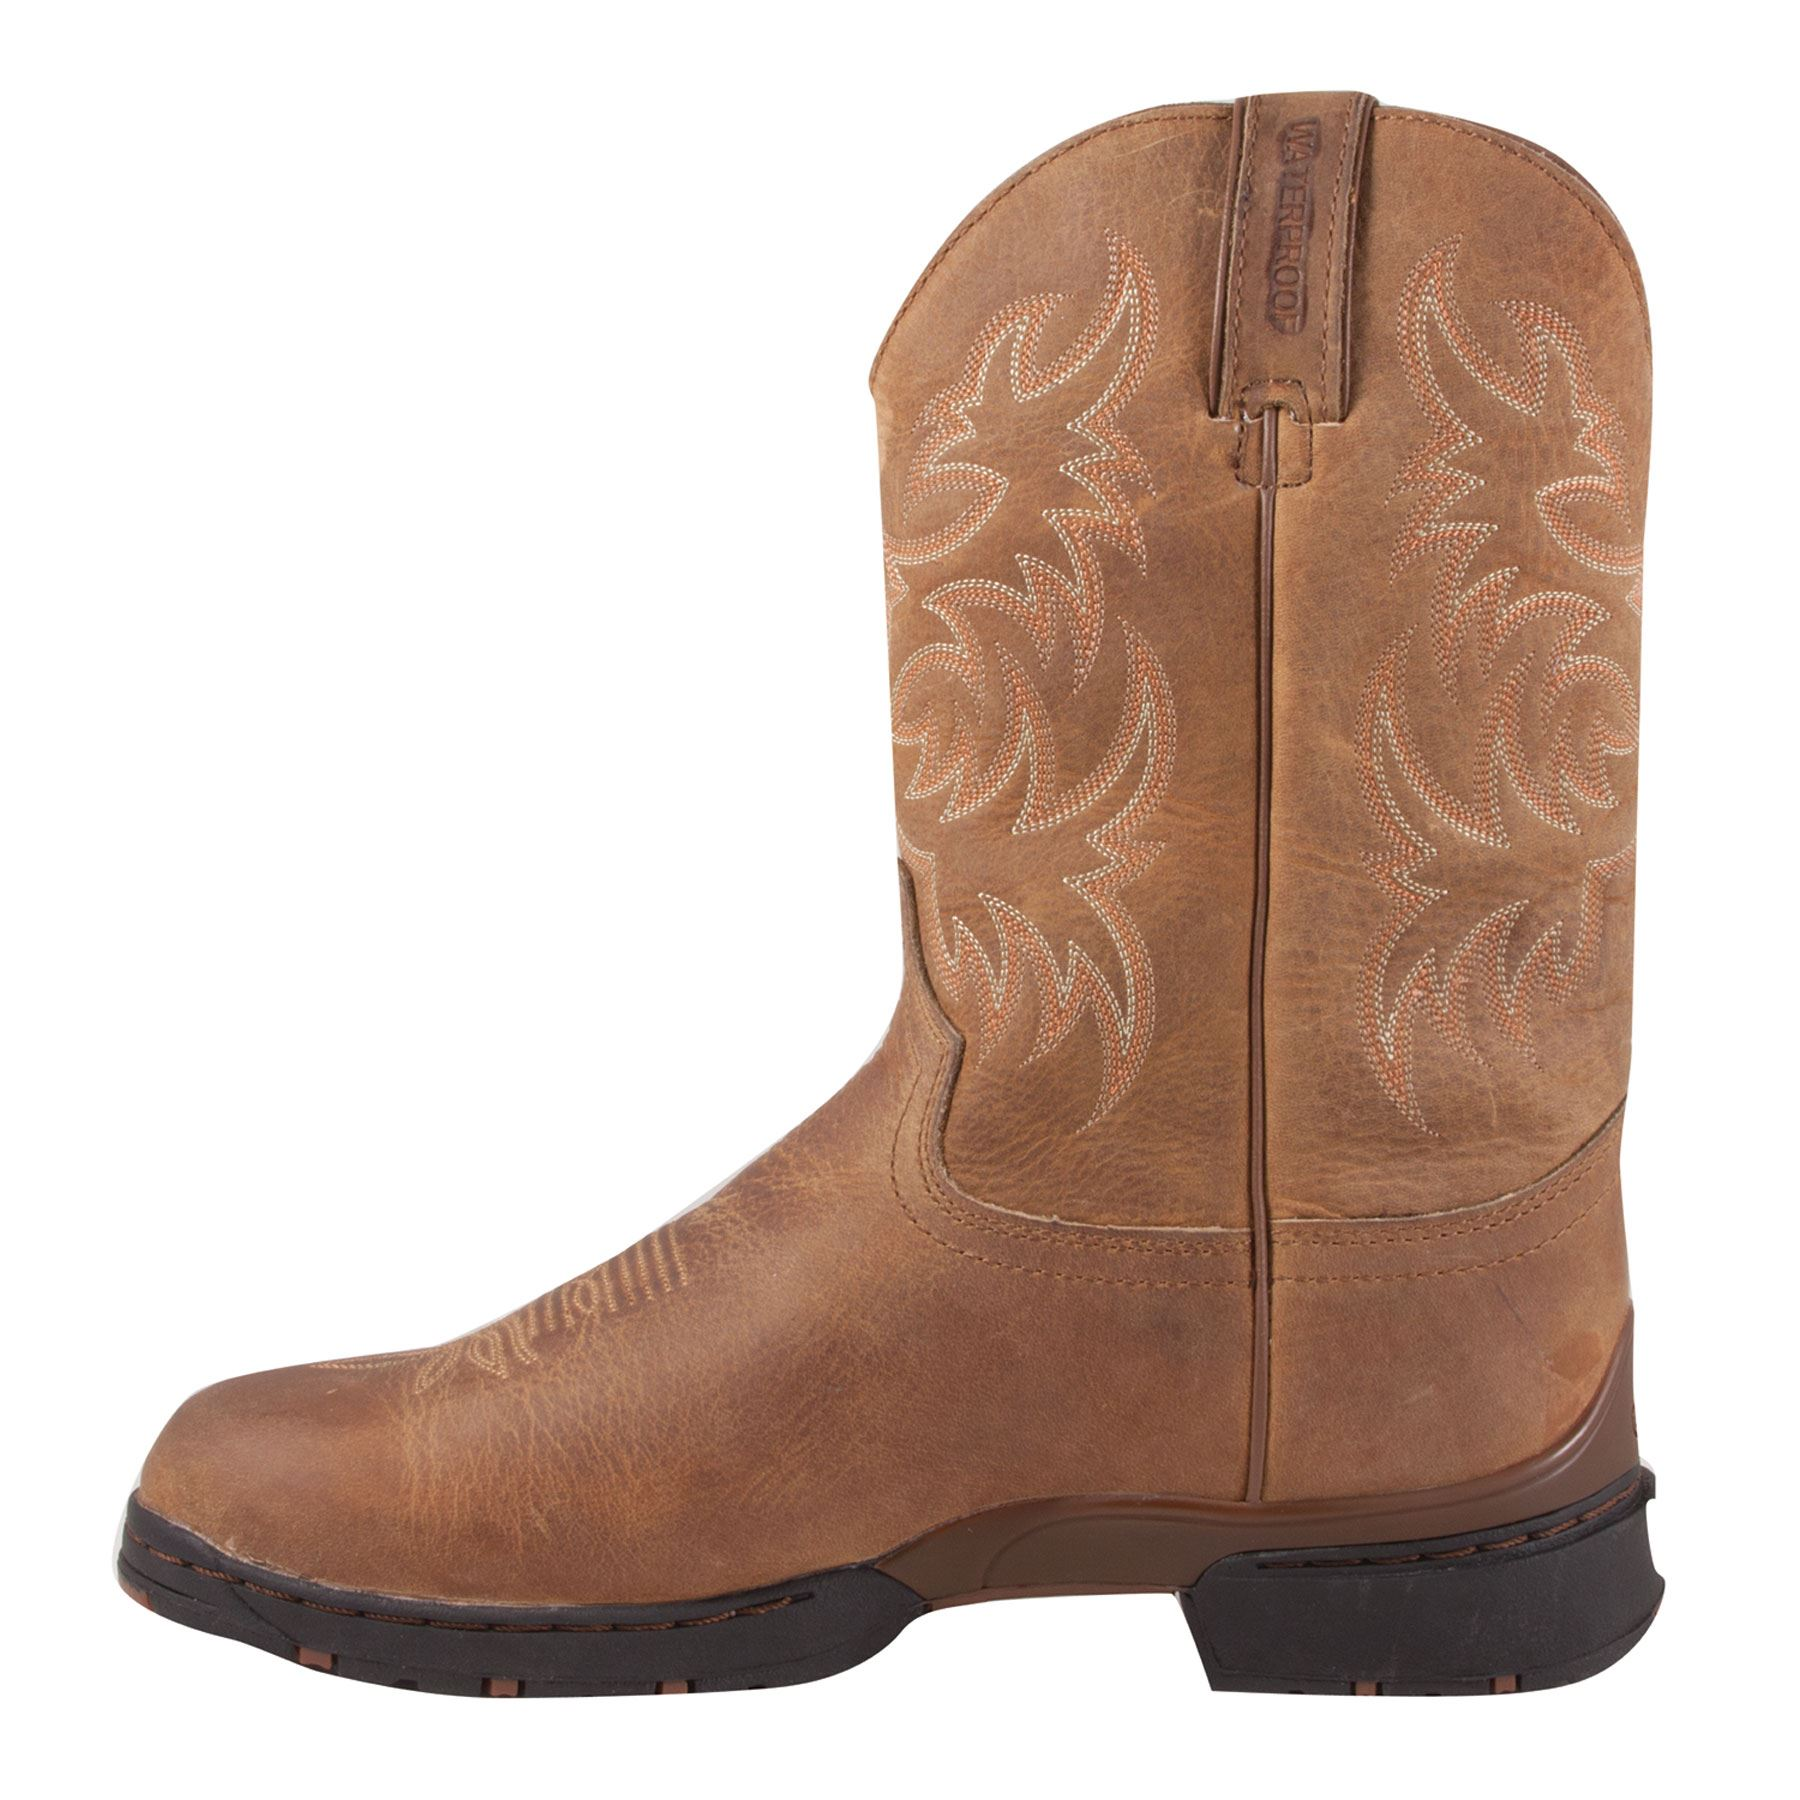 b2d4542df4a Justin Mens George Strait Waterproof Roper